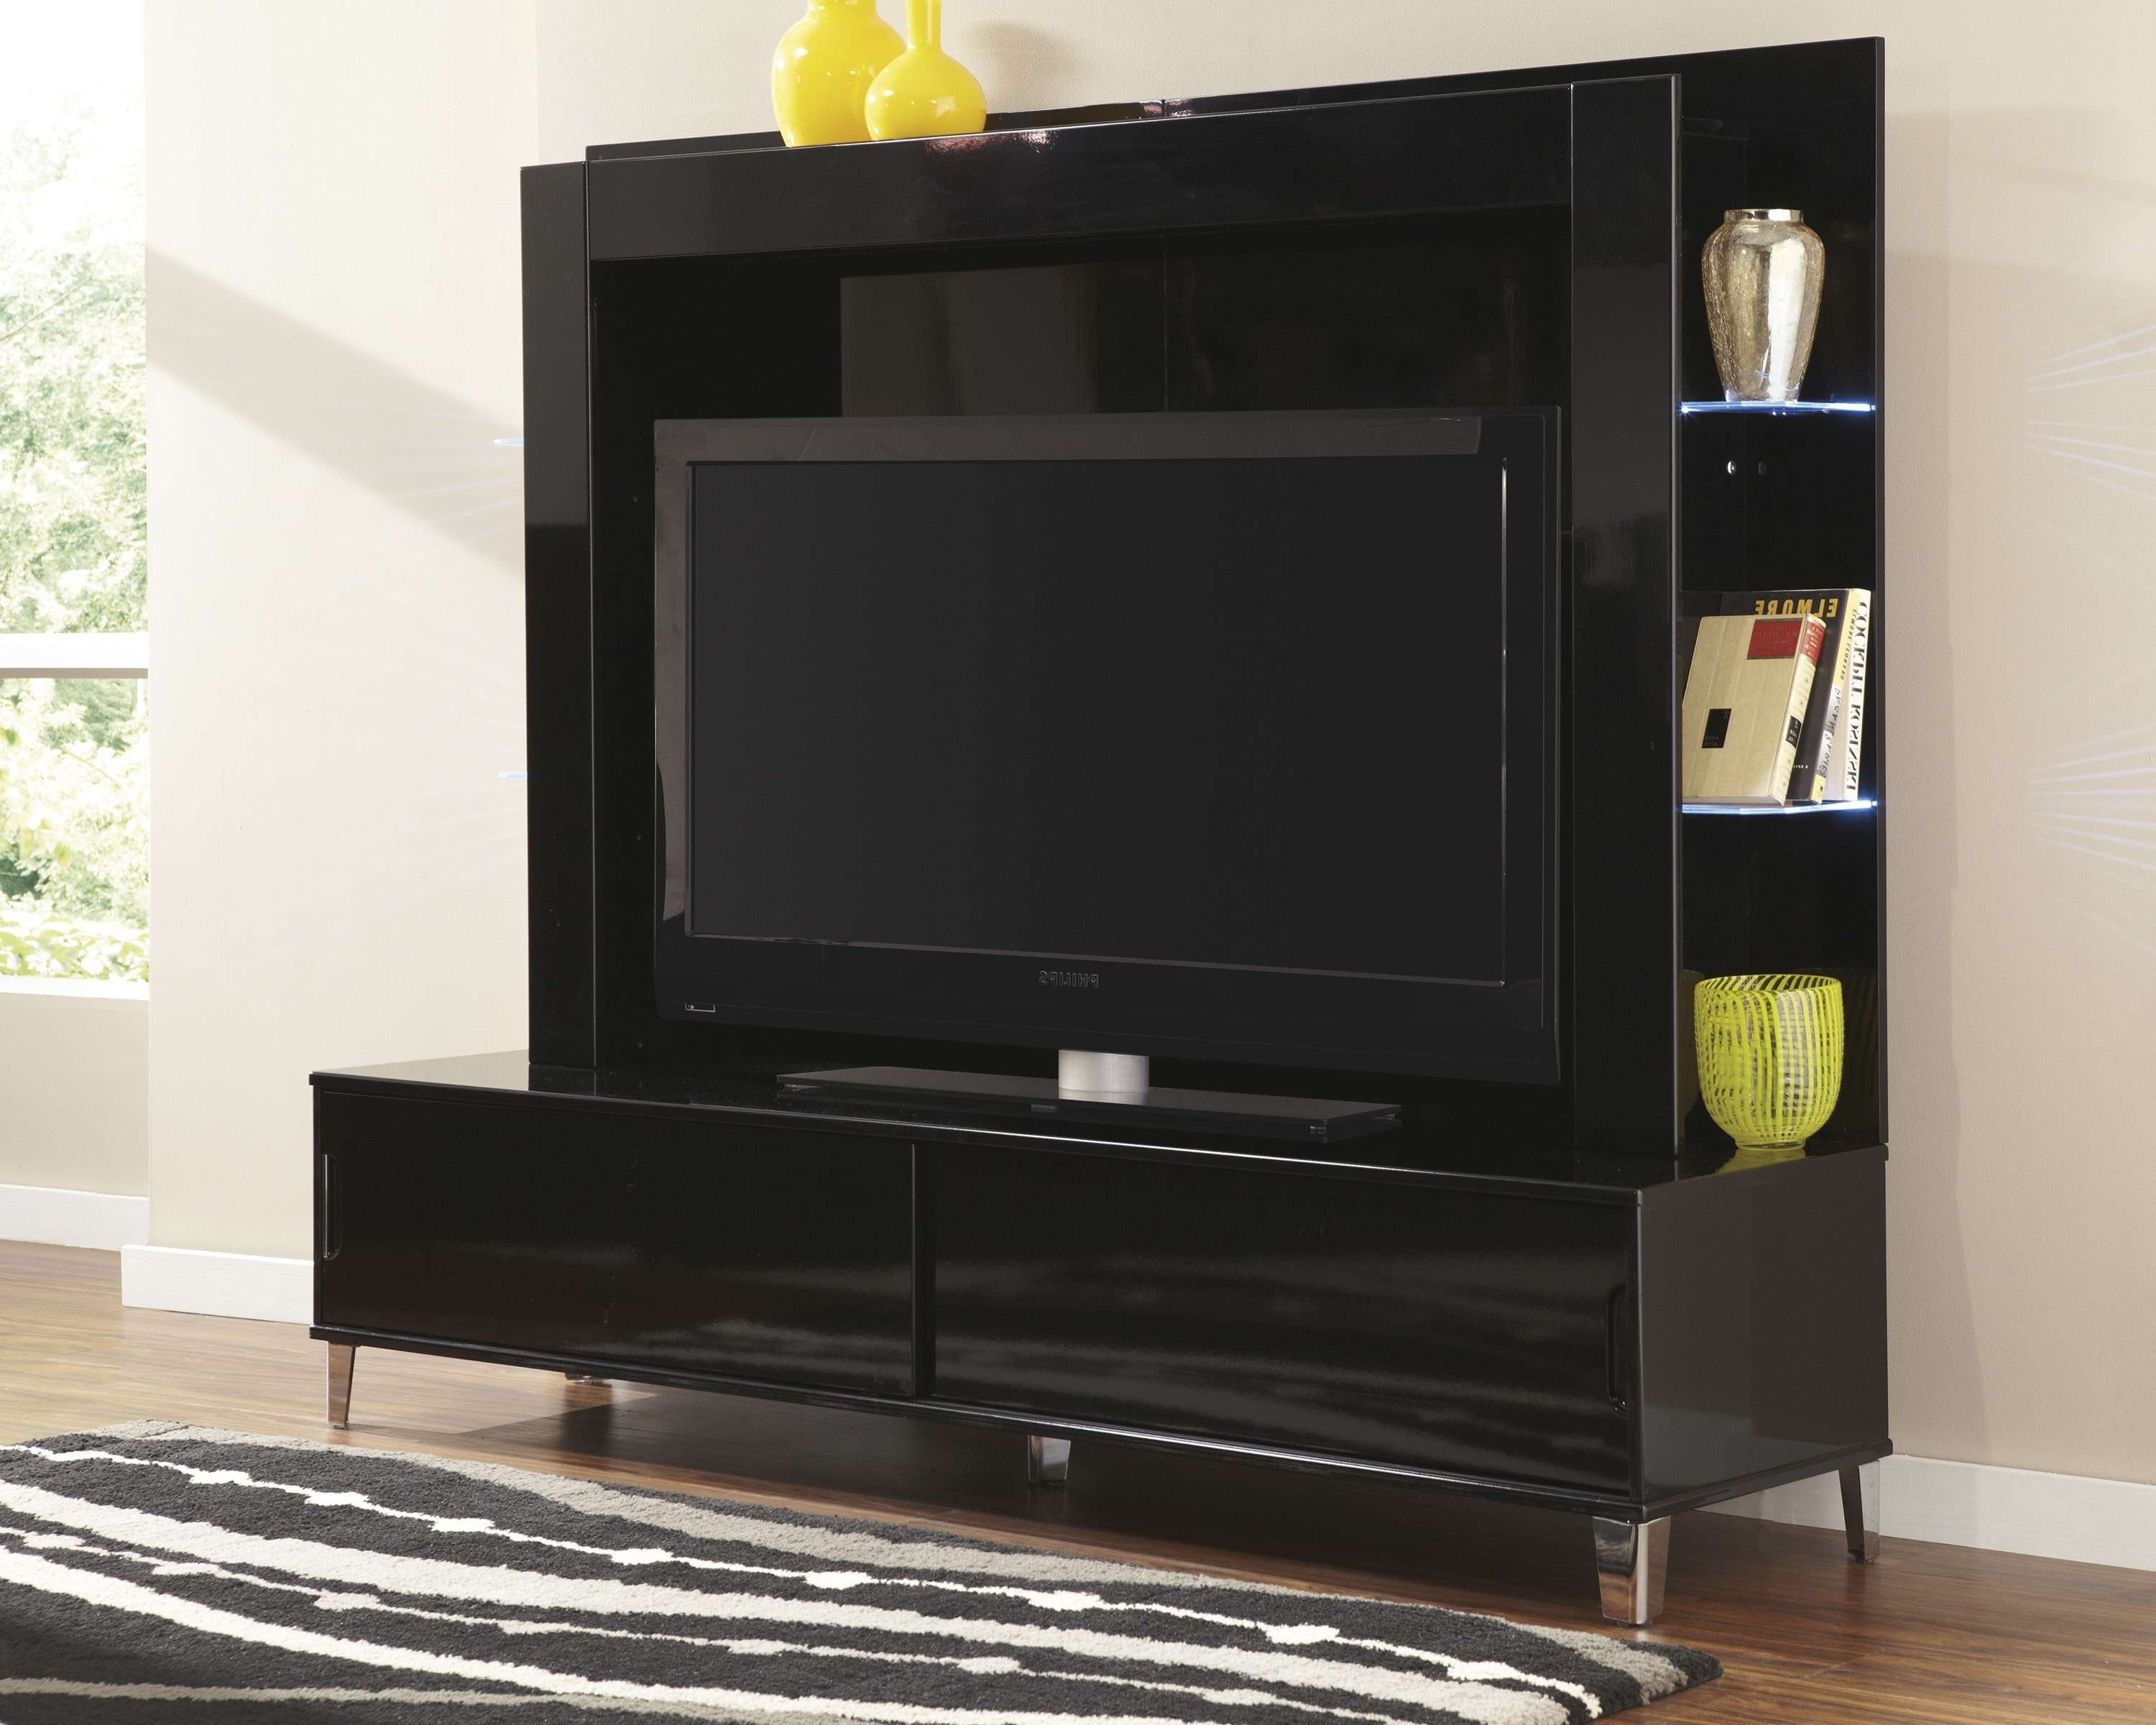 Bedrooms : Exciting Flat Screen Tv Mount Stand Cream Wall Wooden Inside Corner Tv Cabinets For Flat Screens With Doors (View 2 of 20)